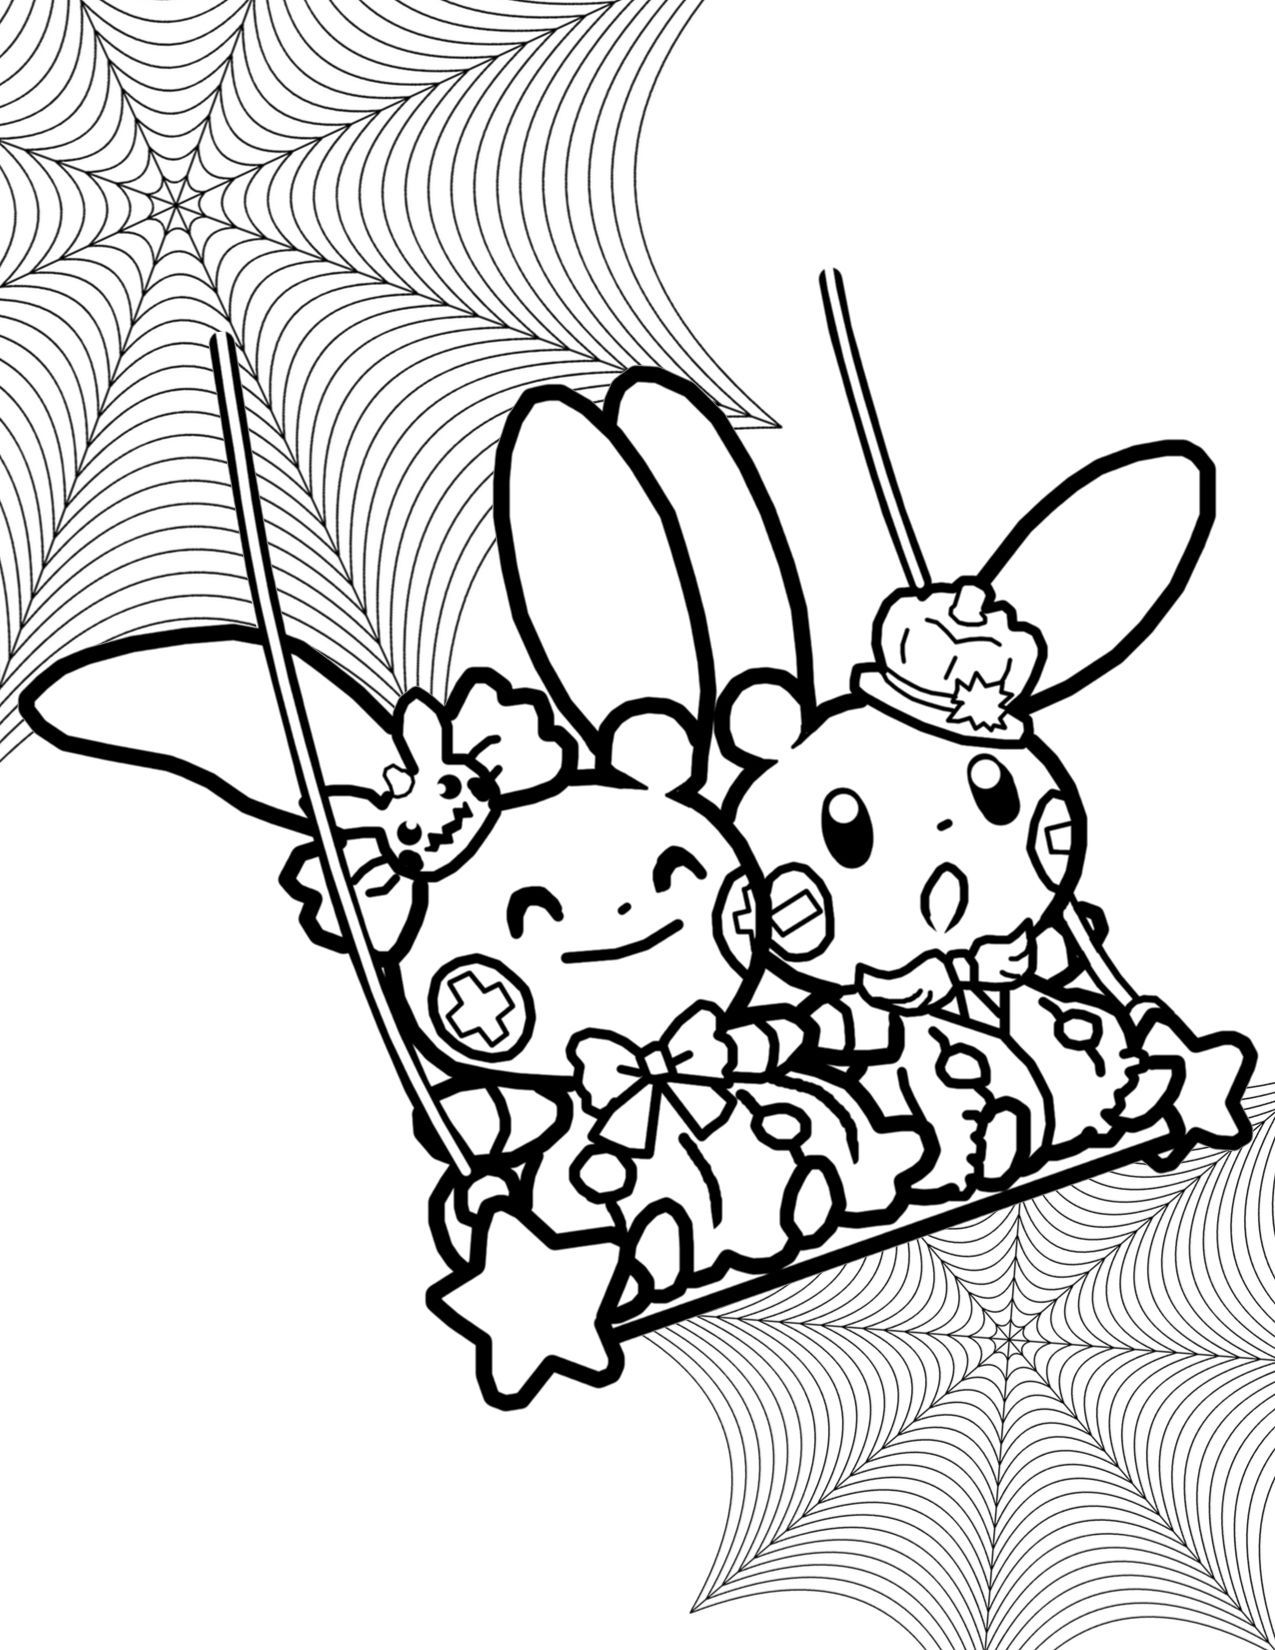 Coloring Pages Pokemon Pokemon Halloween Coloring Pages Here Comes Halloween 2018 Entitlementtrap Com Pokemon Halloween Pokemon Coloring Pages Halloween Coloring Pages